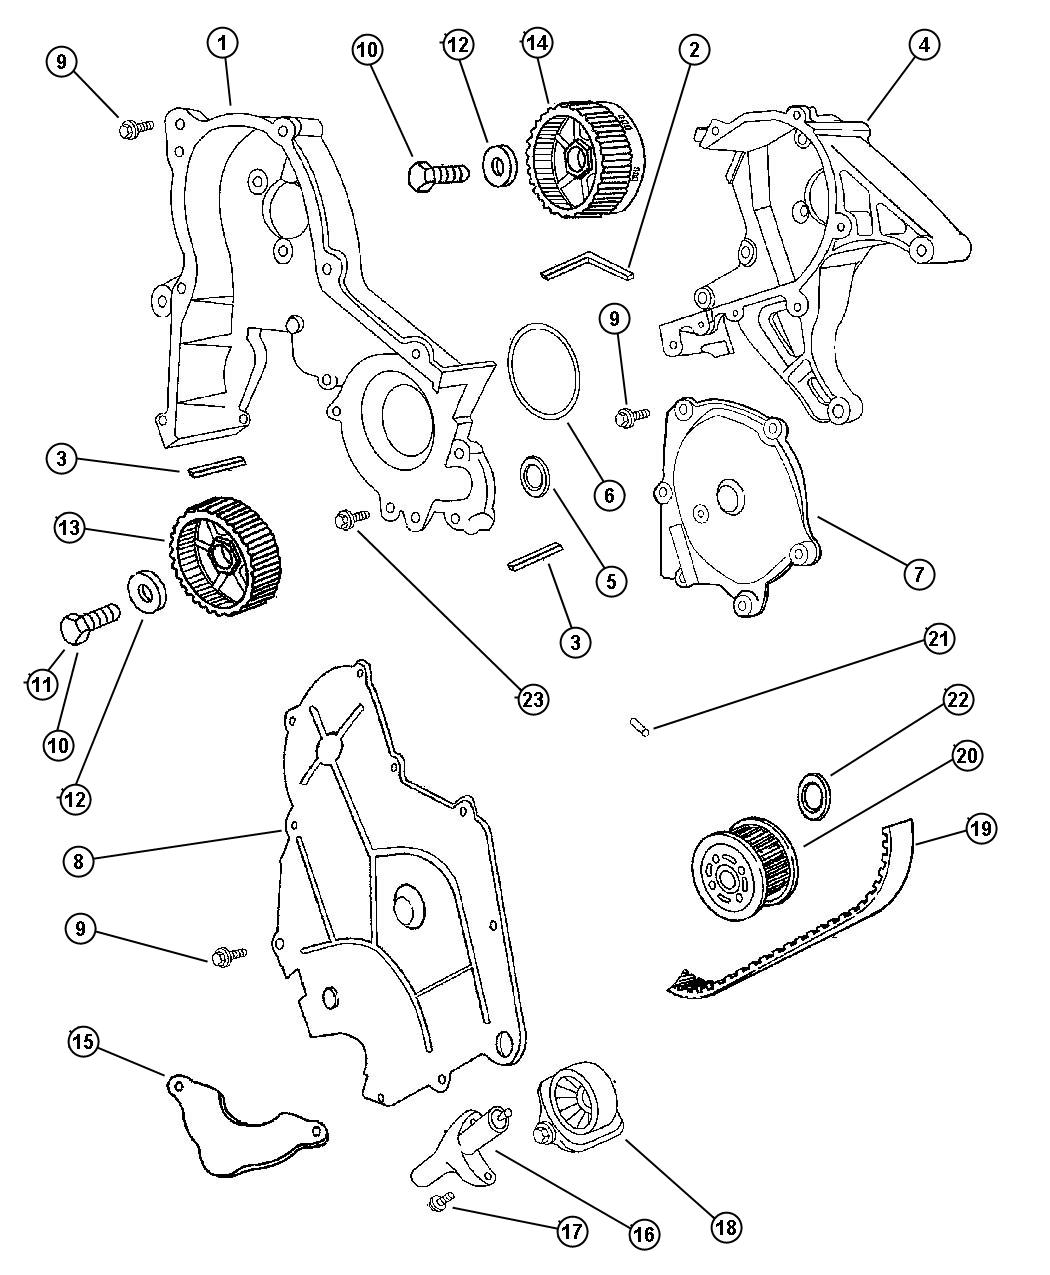 Service manual [2000 Chrysler Lhs Timing Chain Alignment